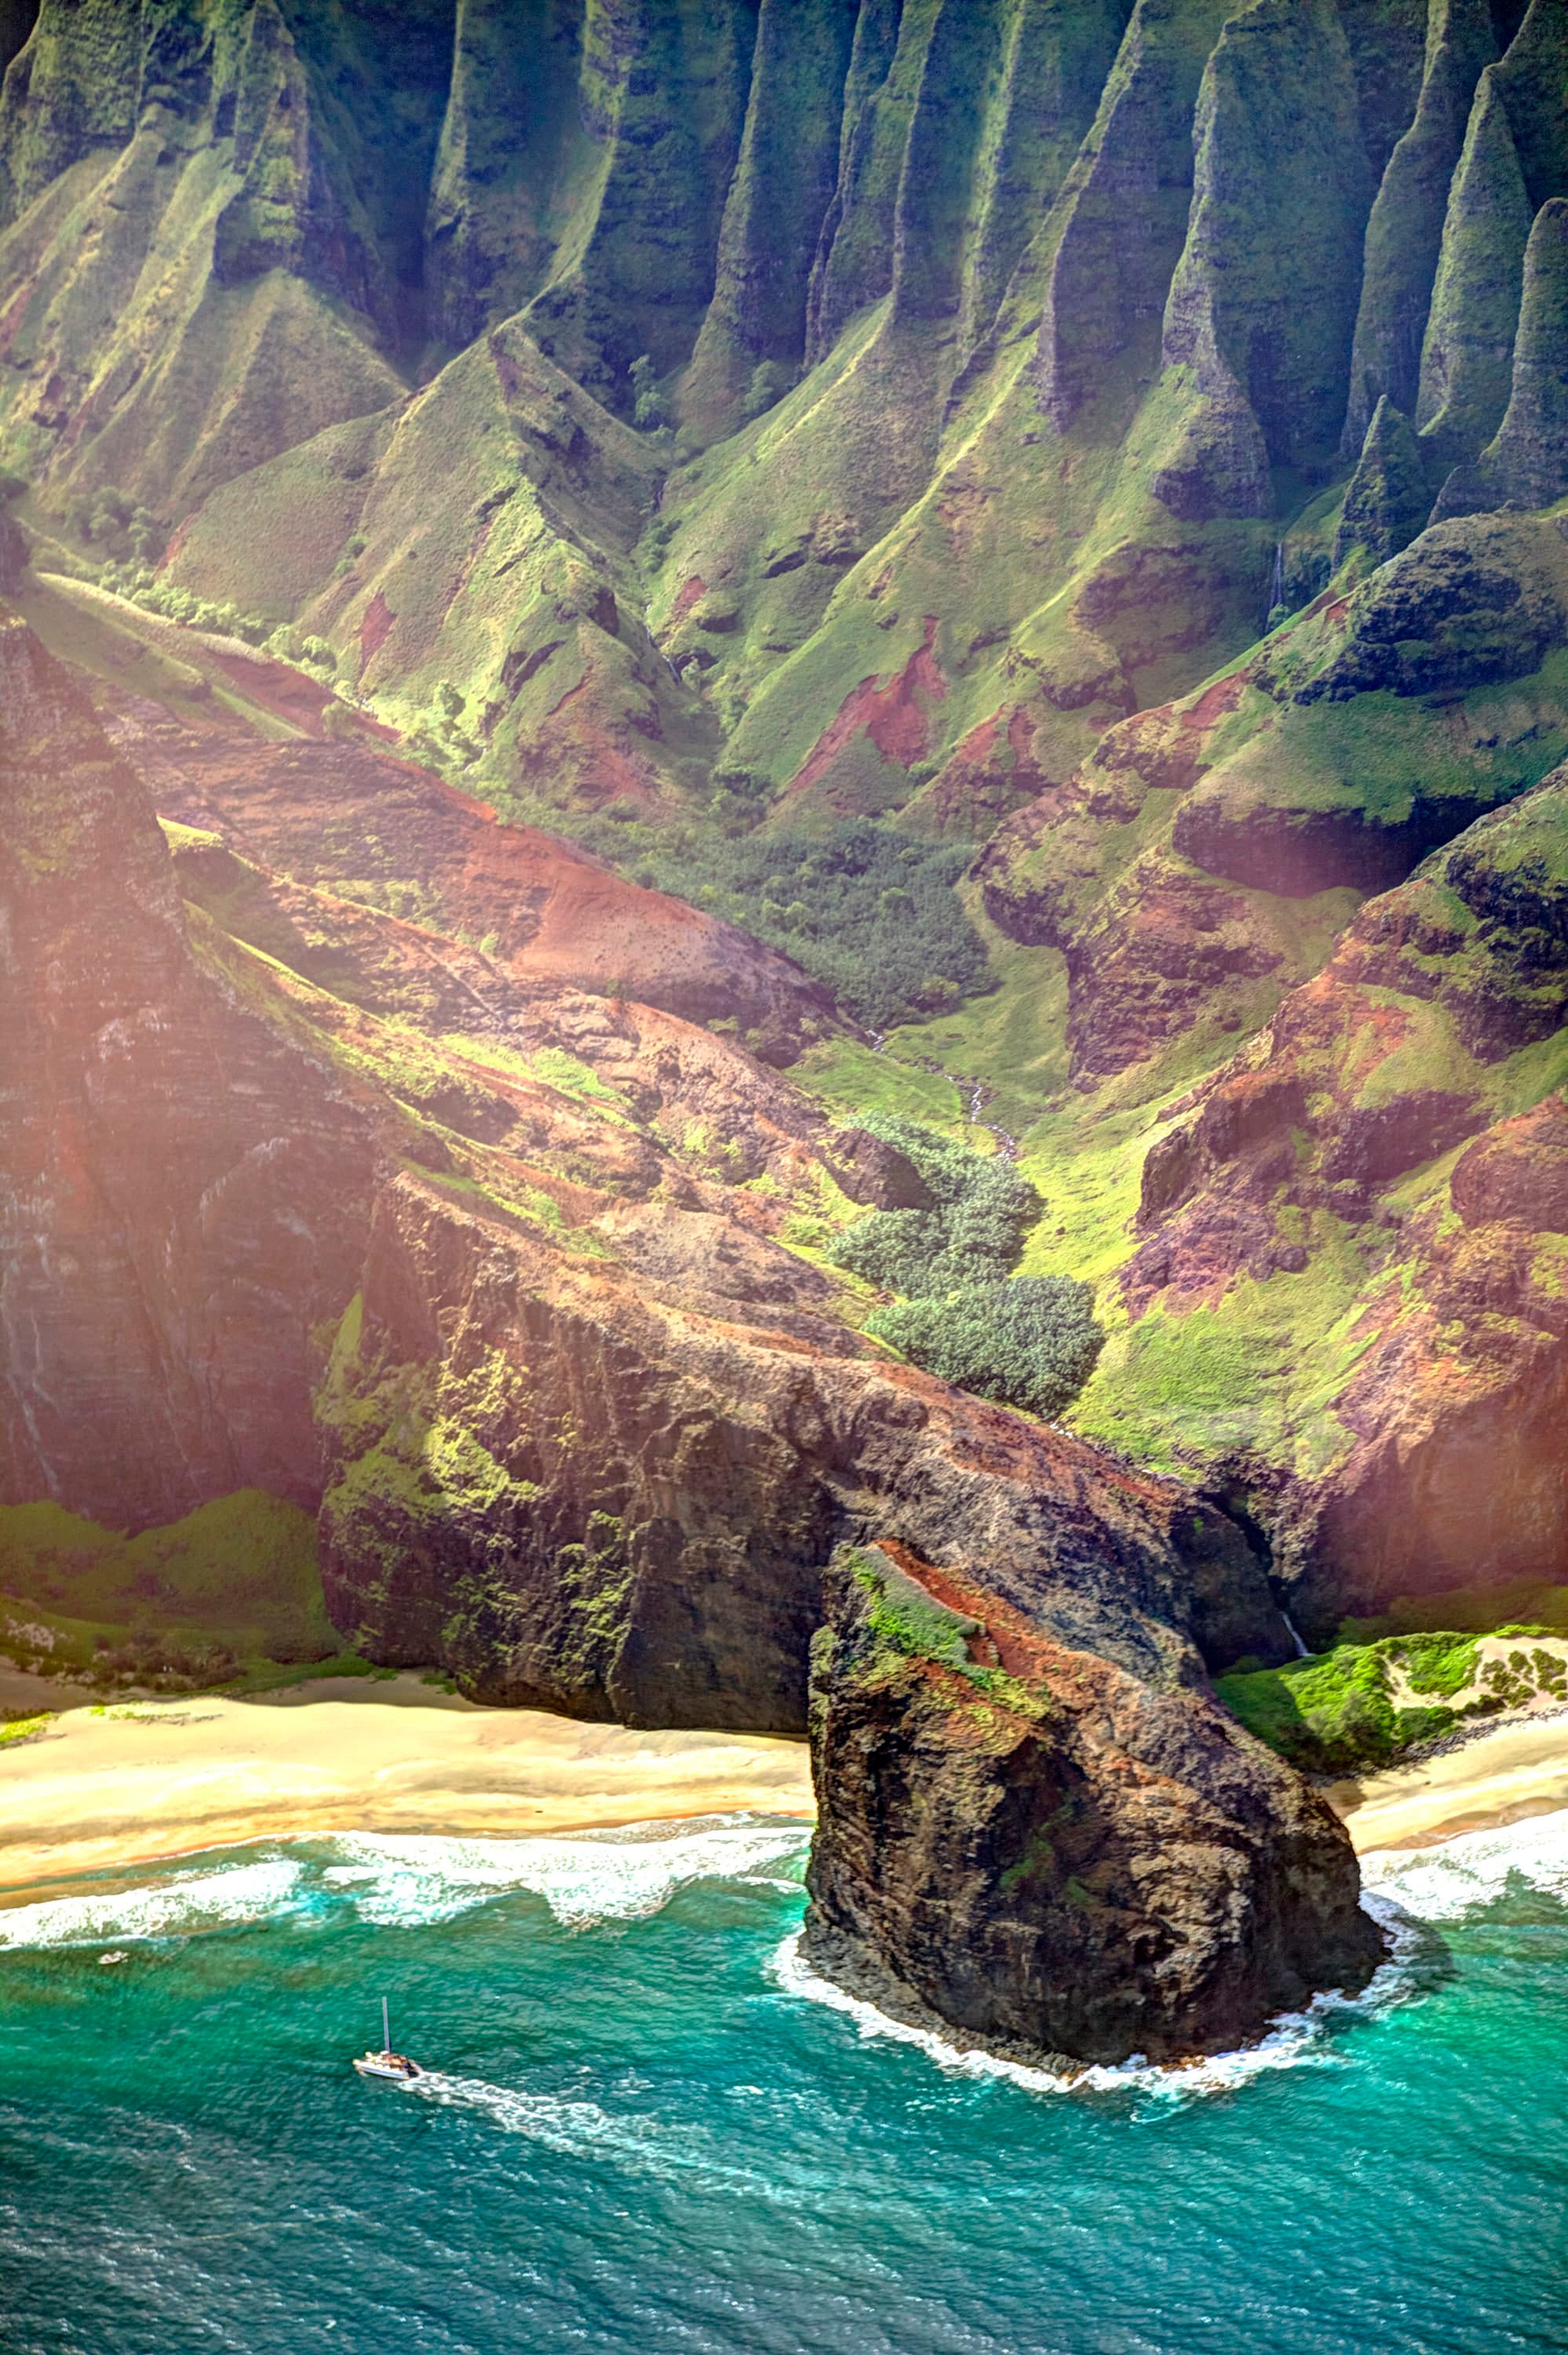 View of Kauai from a helicopter